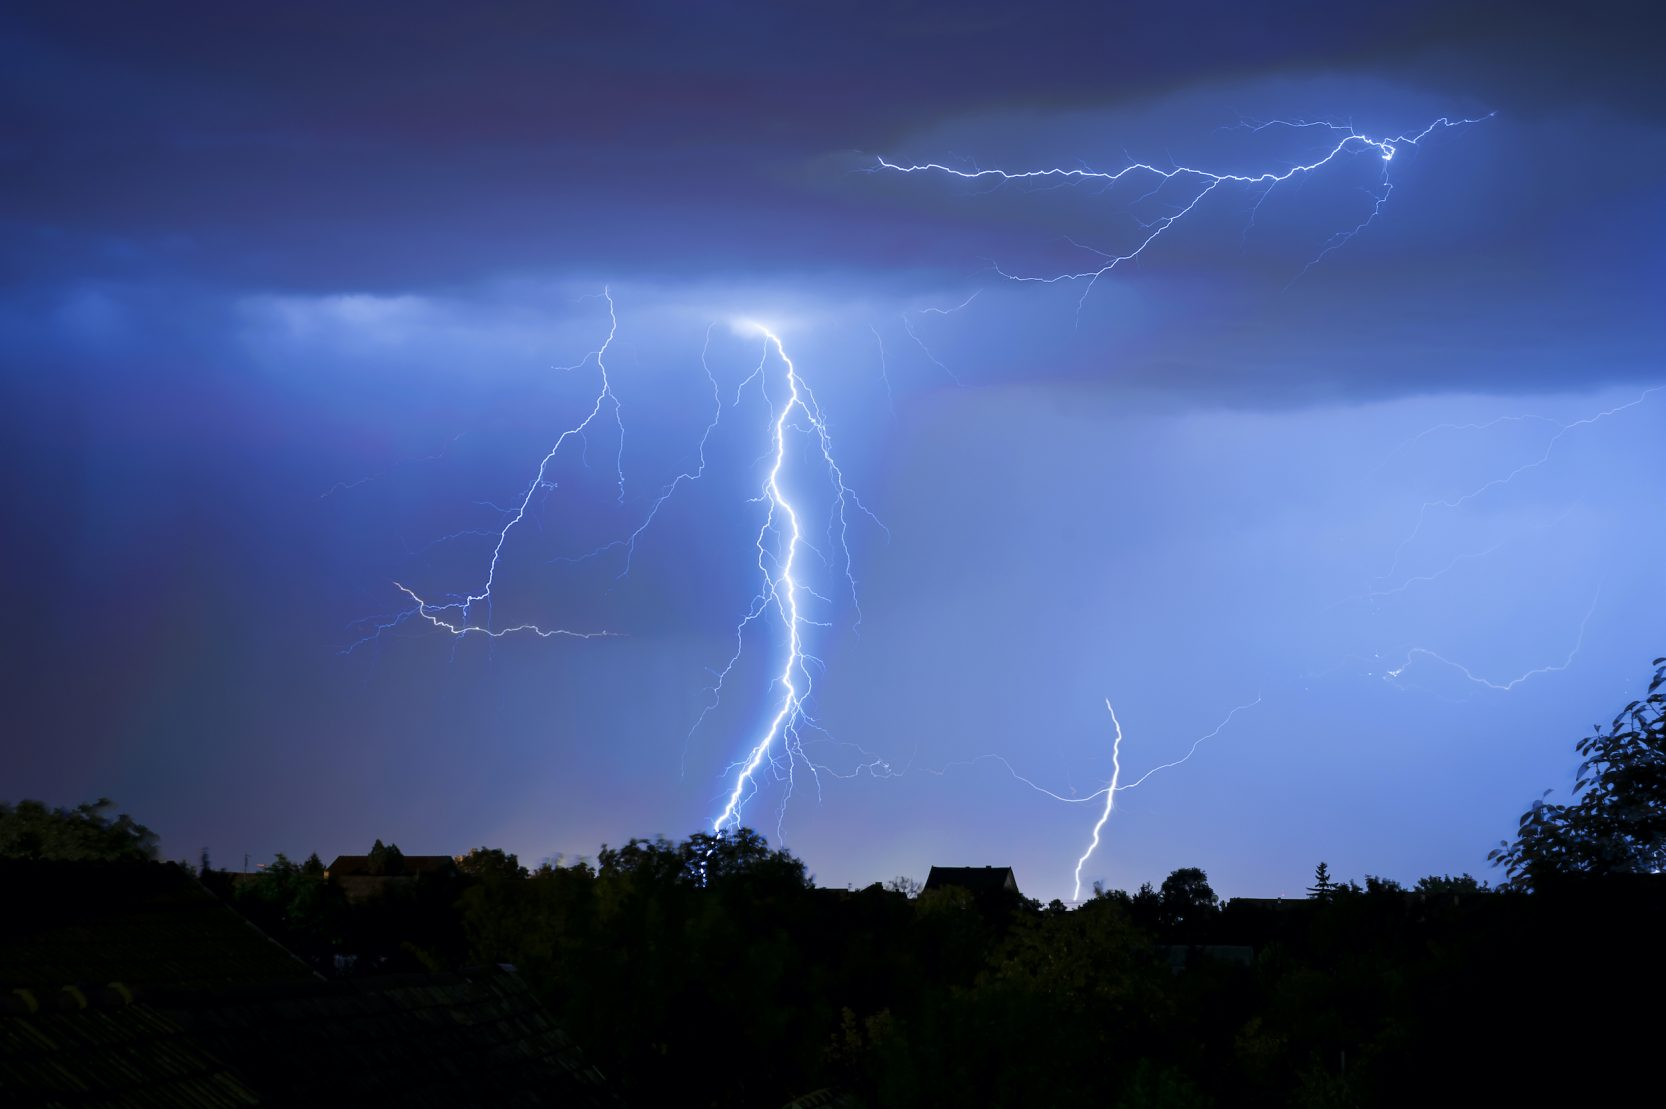 Department of Meteorology Warns of Thundery Rain Associated with Strong Wind and Poor Visibility